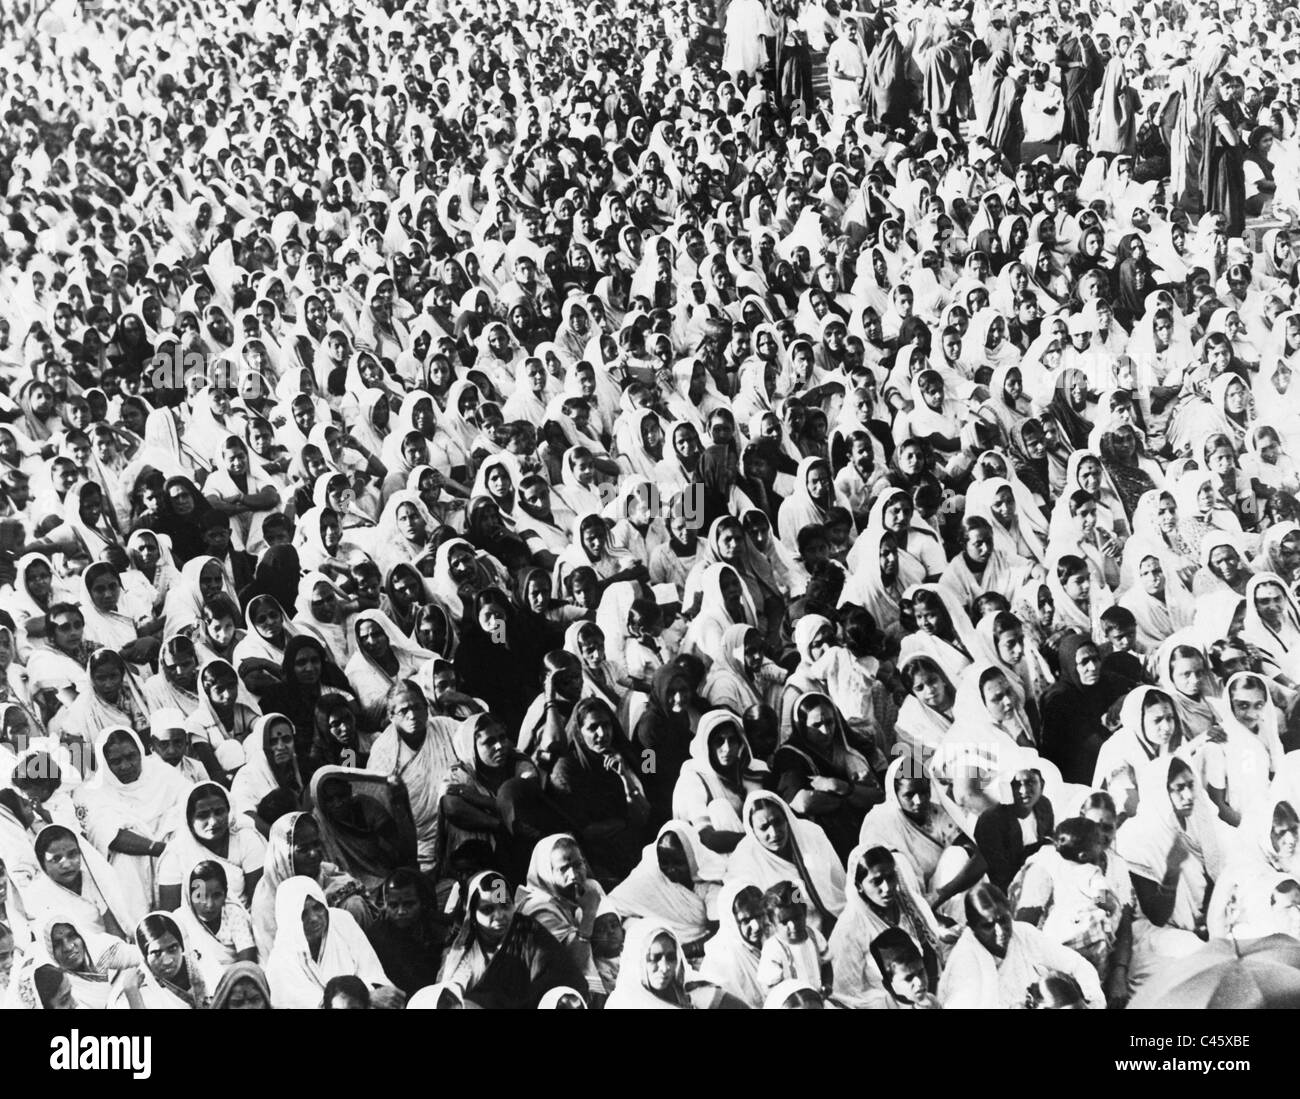 Indian women support Mahatma Gandhi in his struggle against British colonial power, 1932 - Stock Image